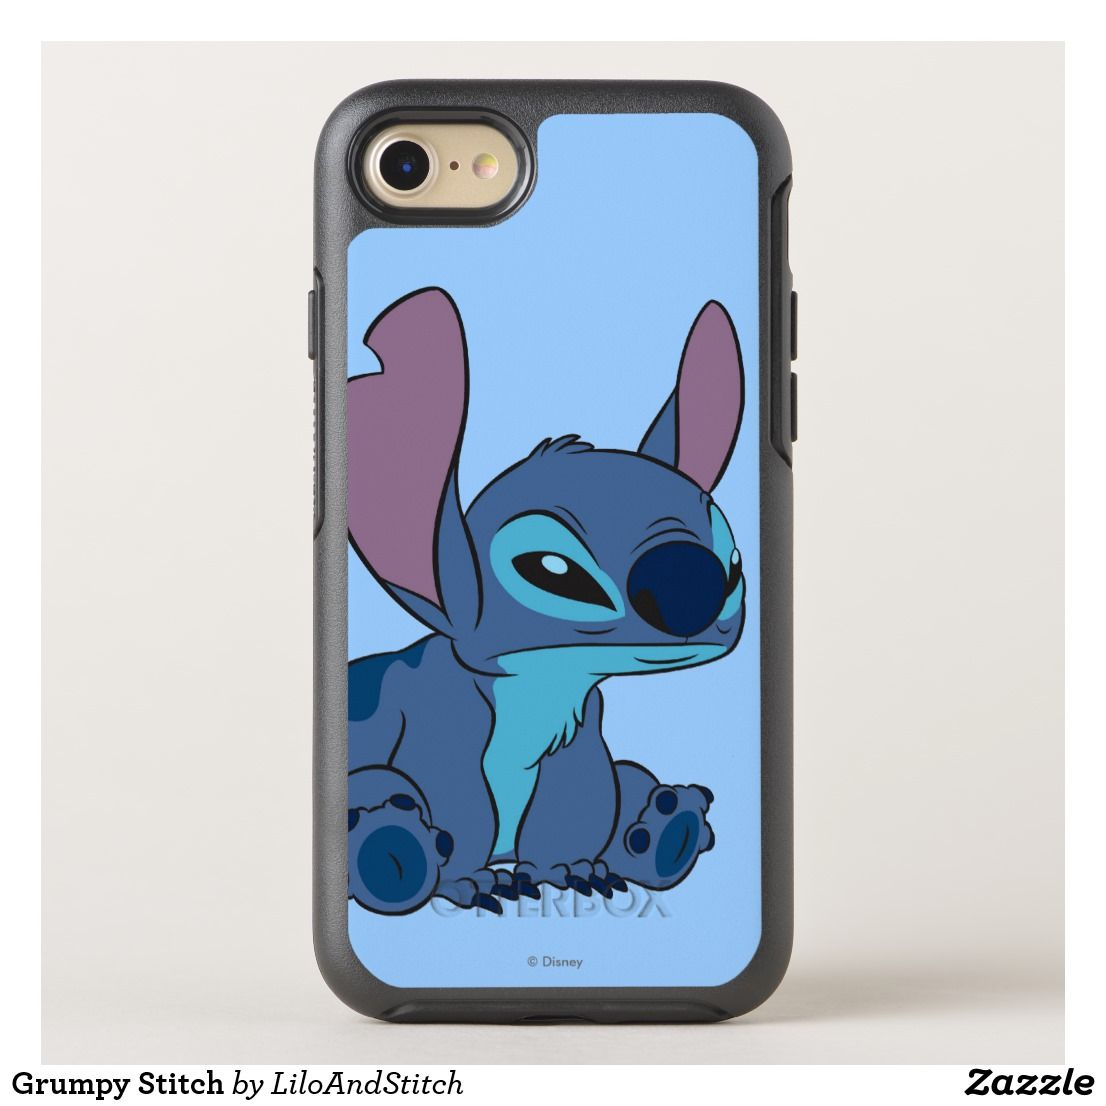 Grumpy Stitch Otterbox Iphone Case Zazzle Com In 2021 Otterbox Iphone Iphone Cases Otterbox Iphone Cases Disney